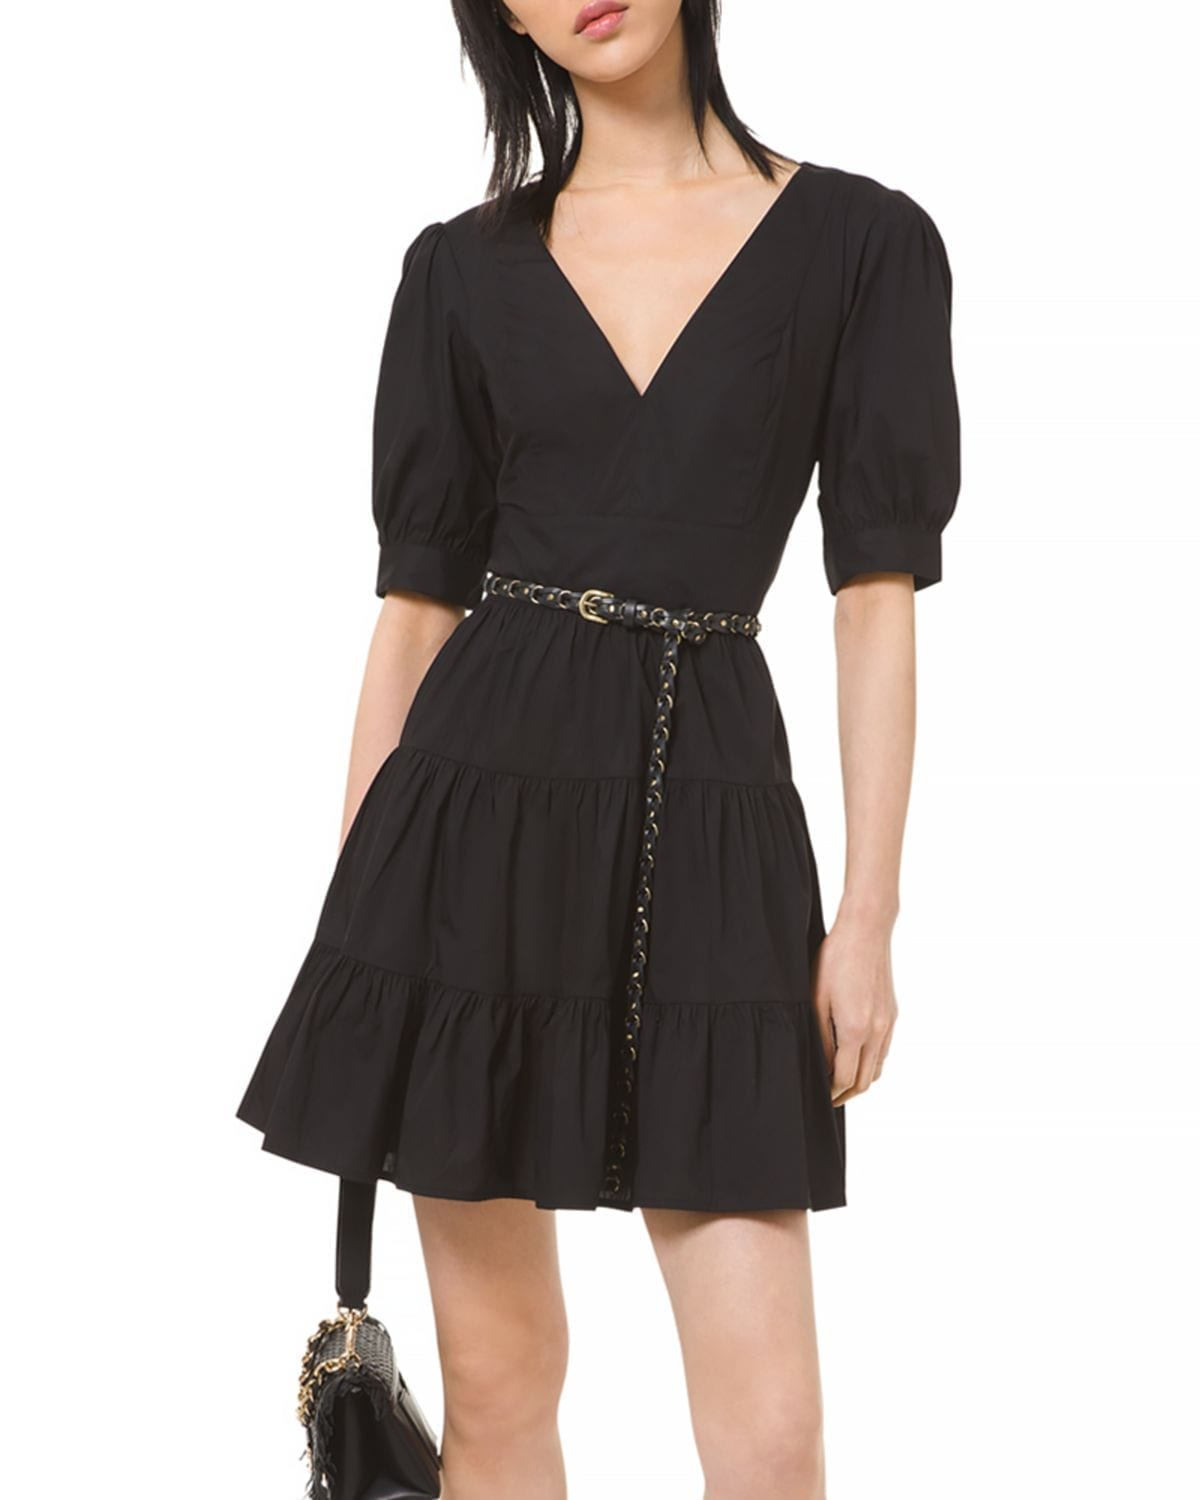 MICHAEL KORS Puff Sleeve Tiered Dress